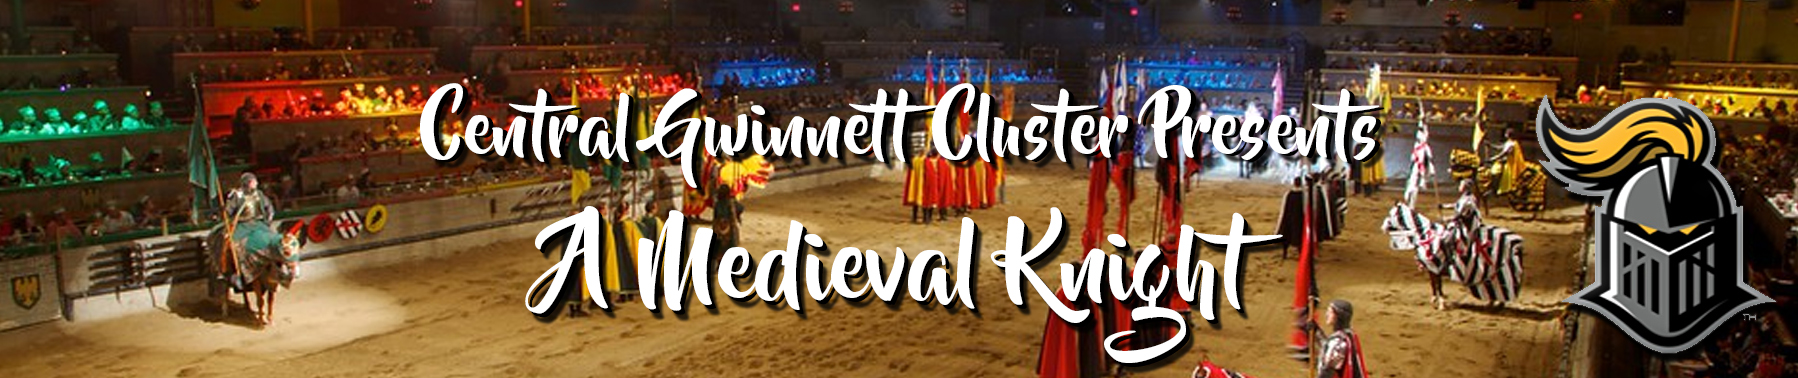 Central Gwinnett Cluster Presents A Knight to Remember